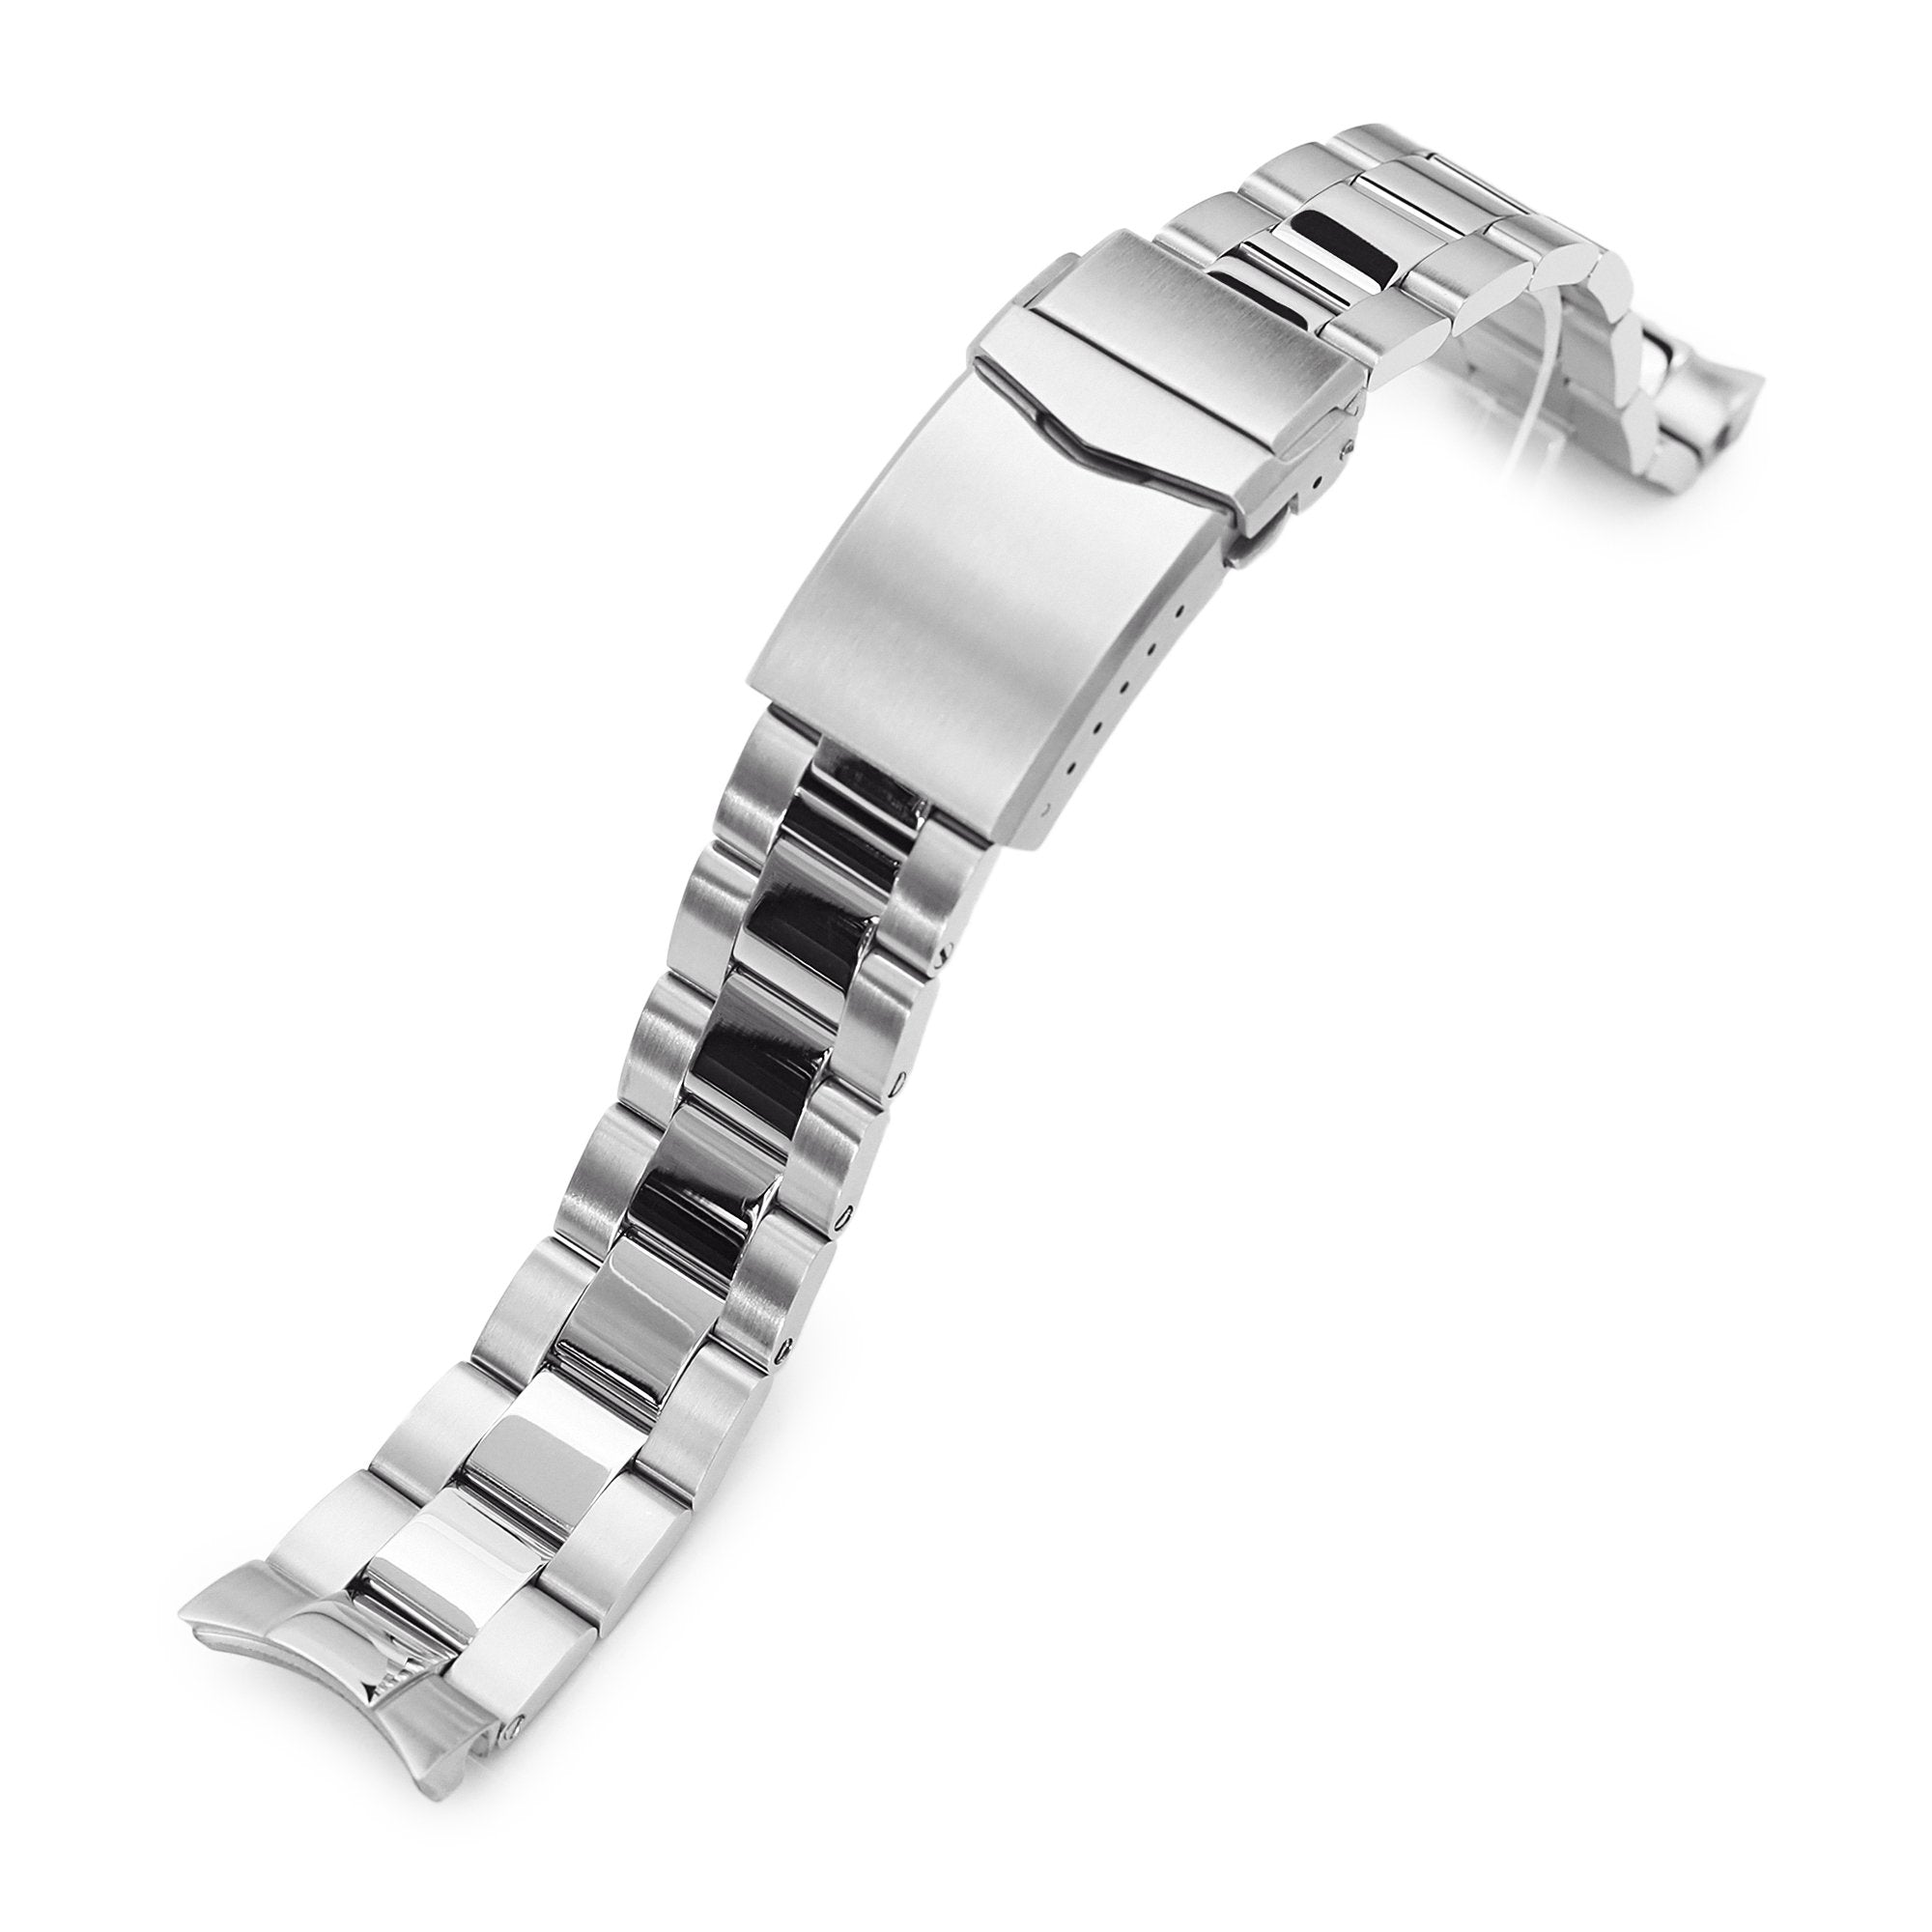 20mm Super-O Boyer 316L Stainless Steel Watch Band for Seiko SARB035, Brushed and Polished V-Clasp Strapcode Watch Bands